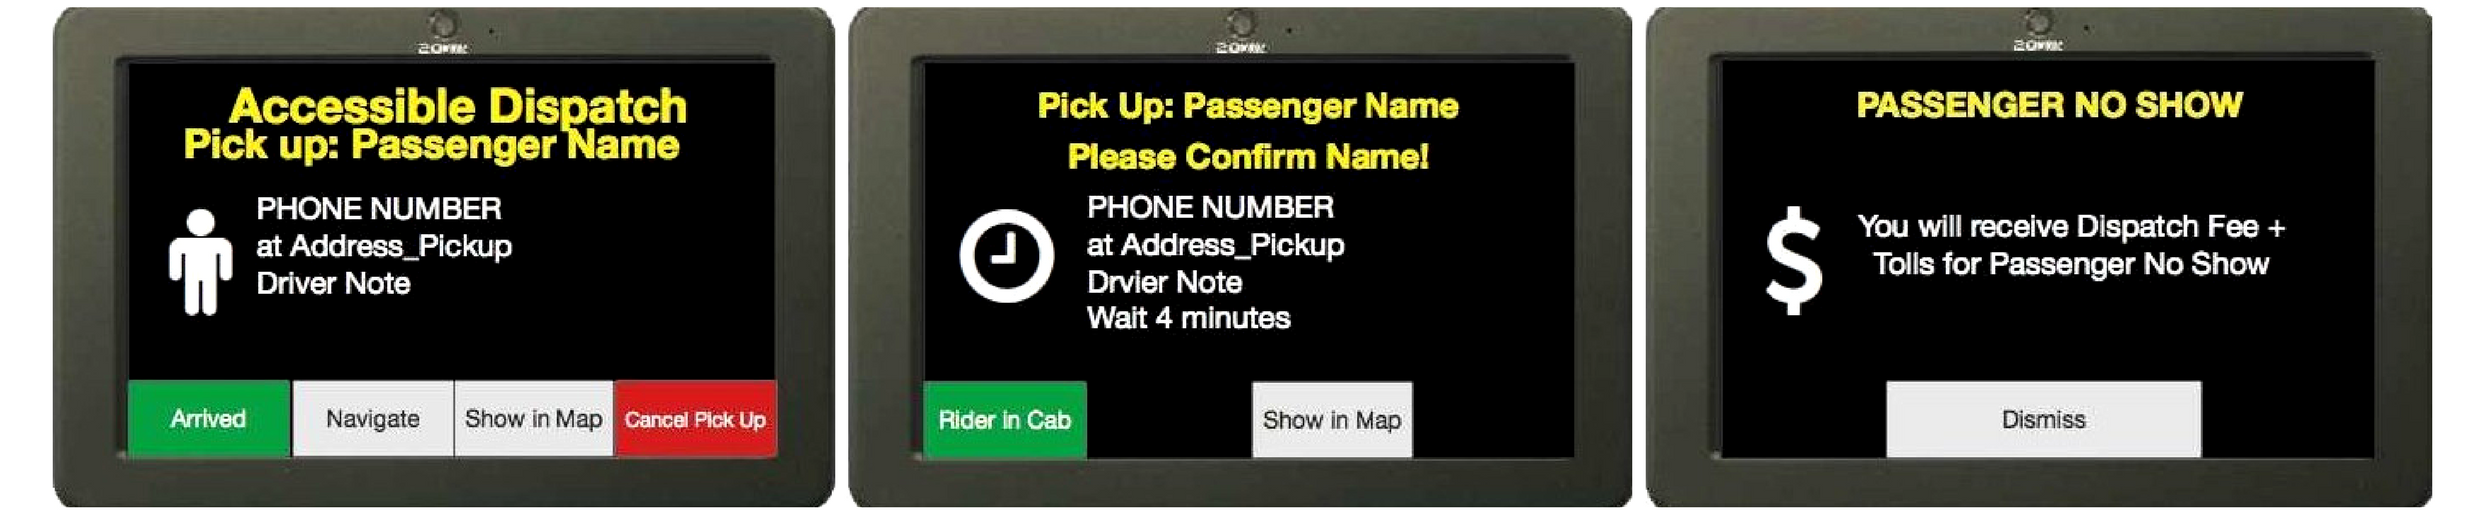 Accessible Dispatch TPEP/LPEP Device use and steps for drivers to click